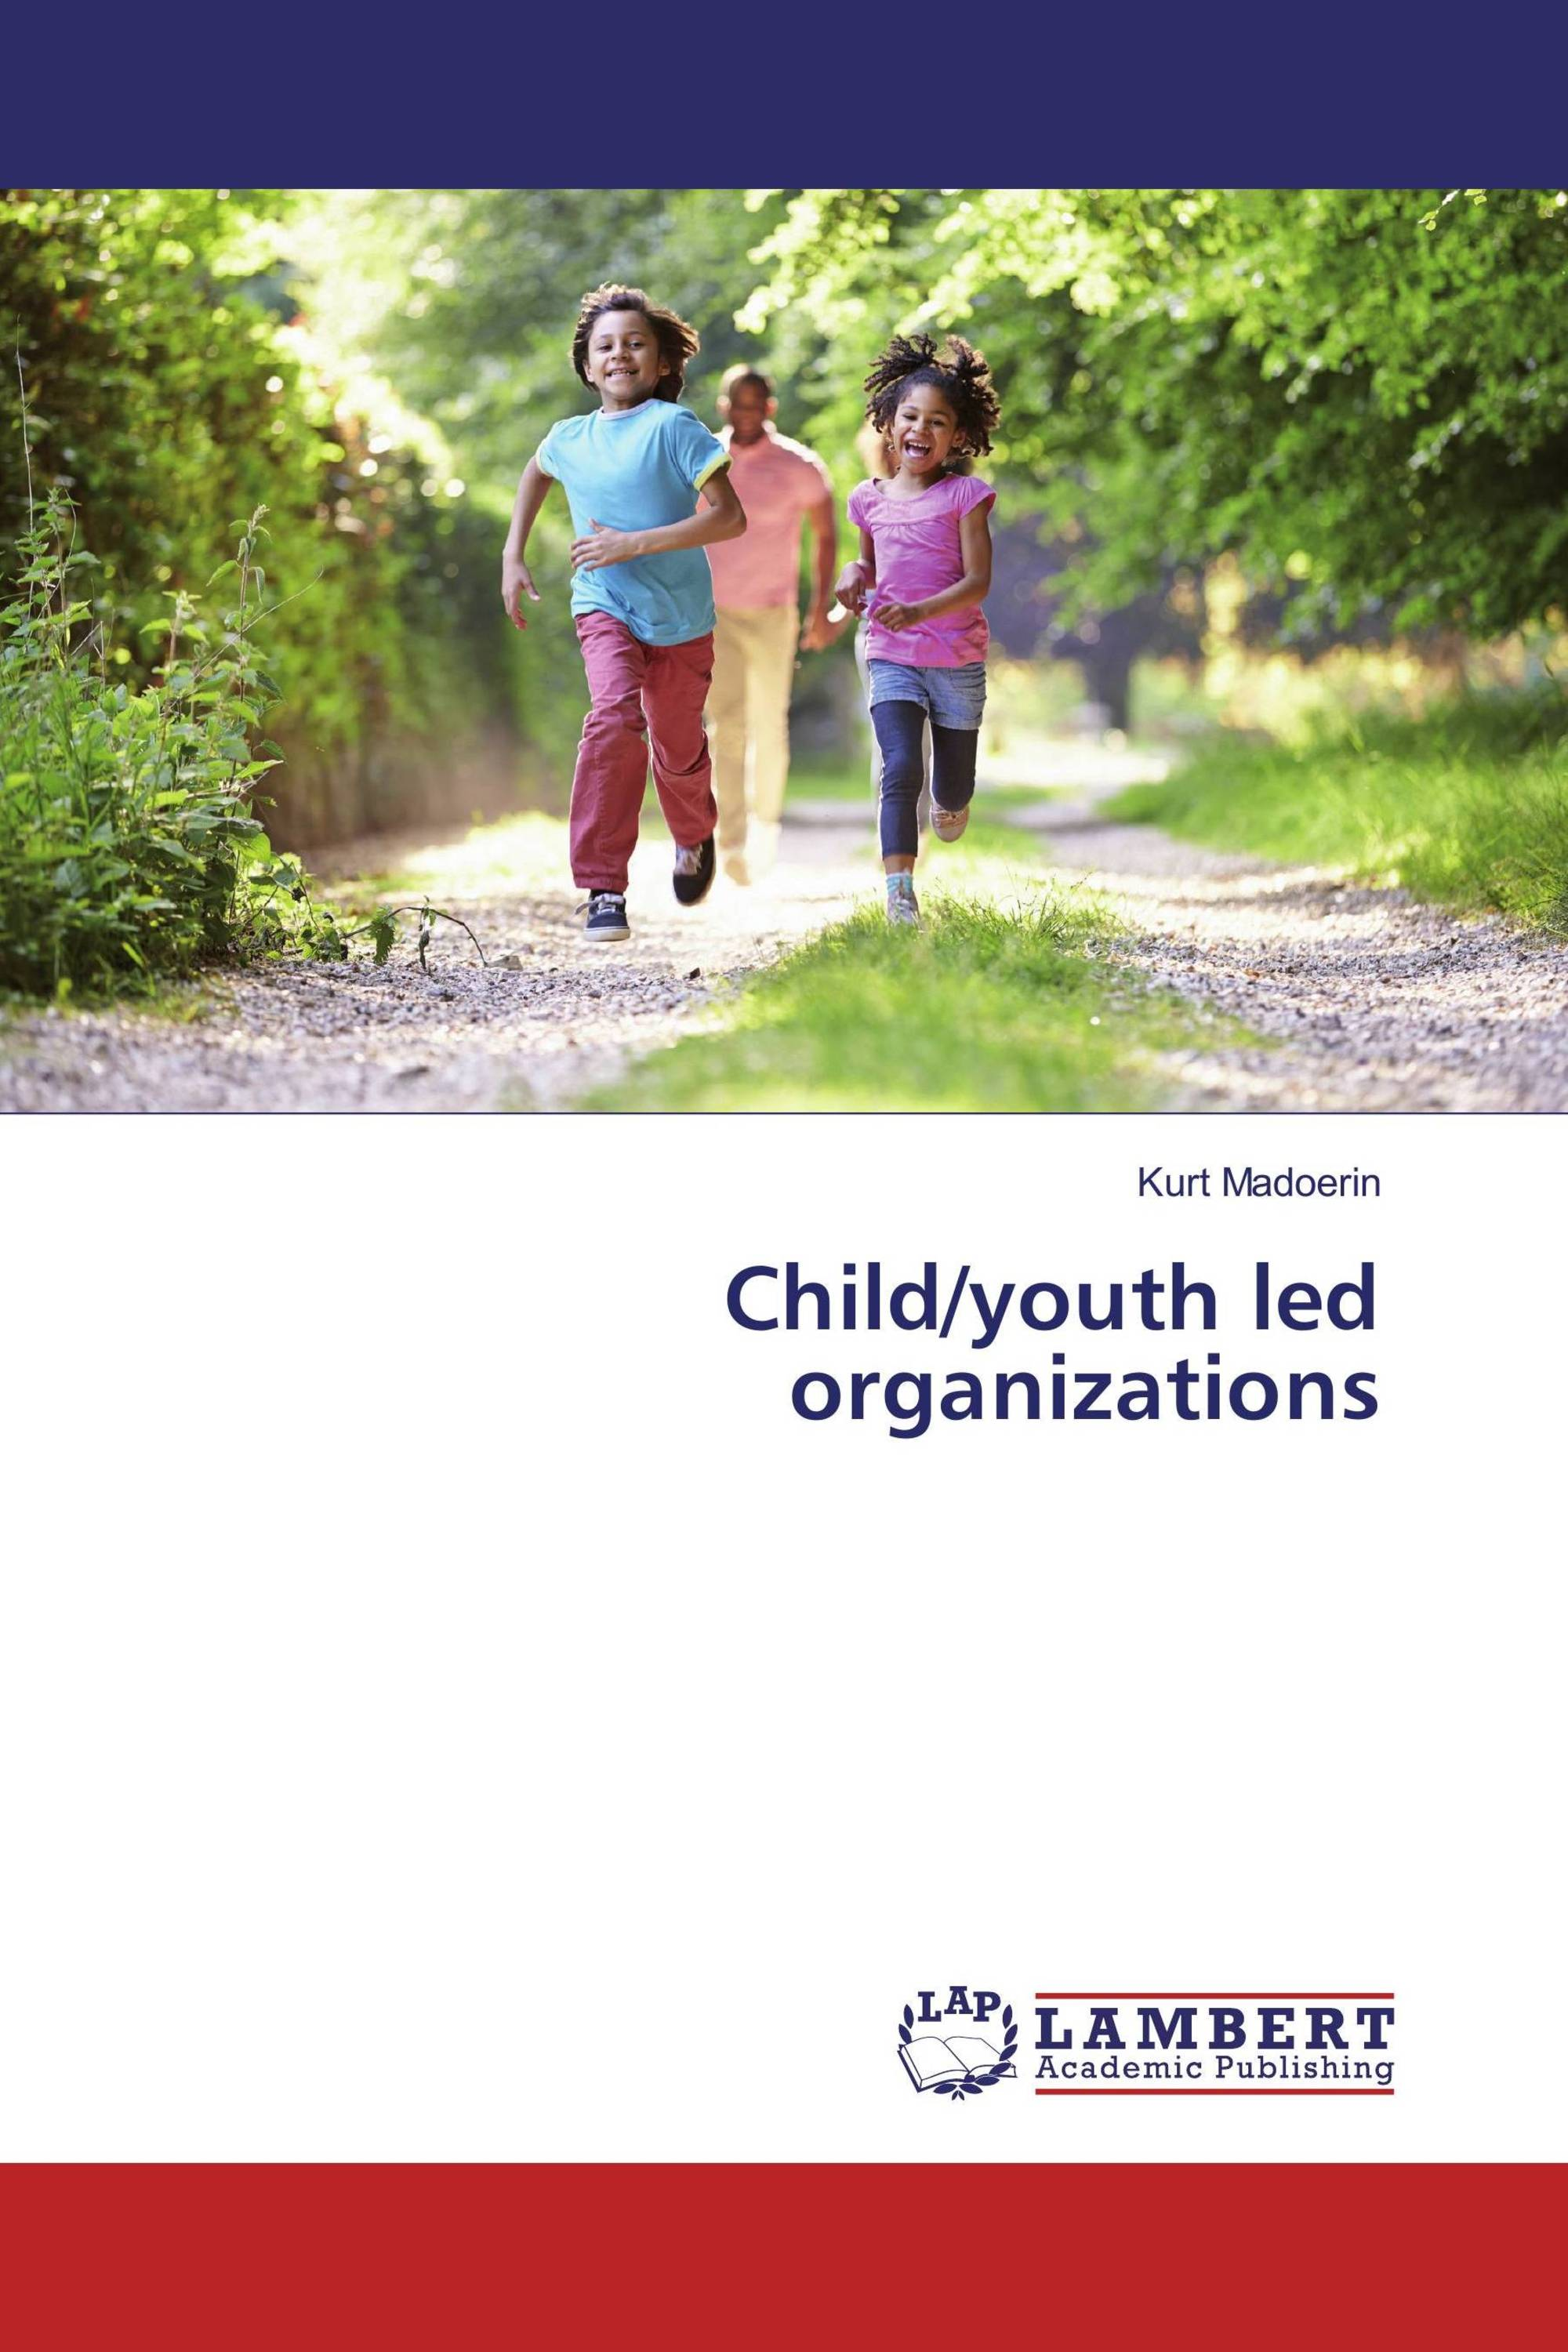 childhood and youth organizations Cyl promotes critical thinking about how children and youth grow, change,  it to  real life situations in local community schools and organizations, enriching.